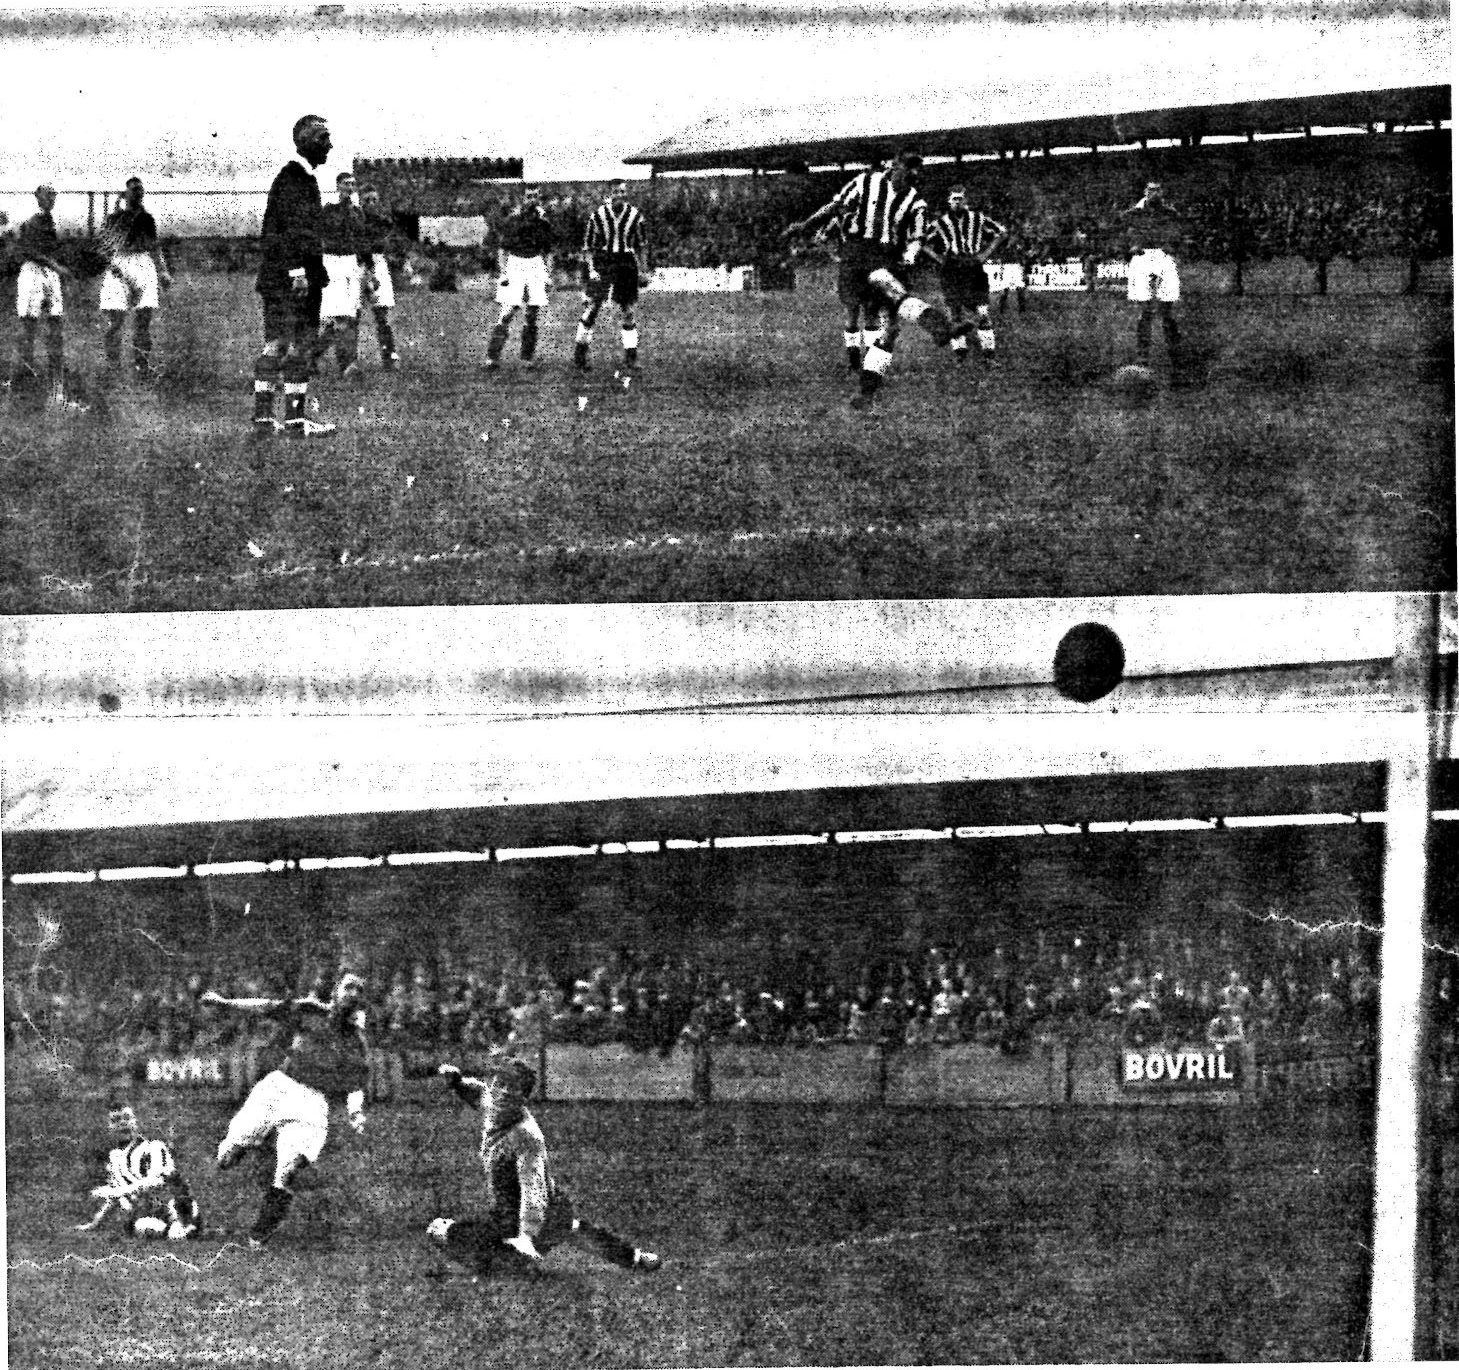 Two goals scored v Stockport in Oct 1938